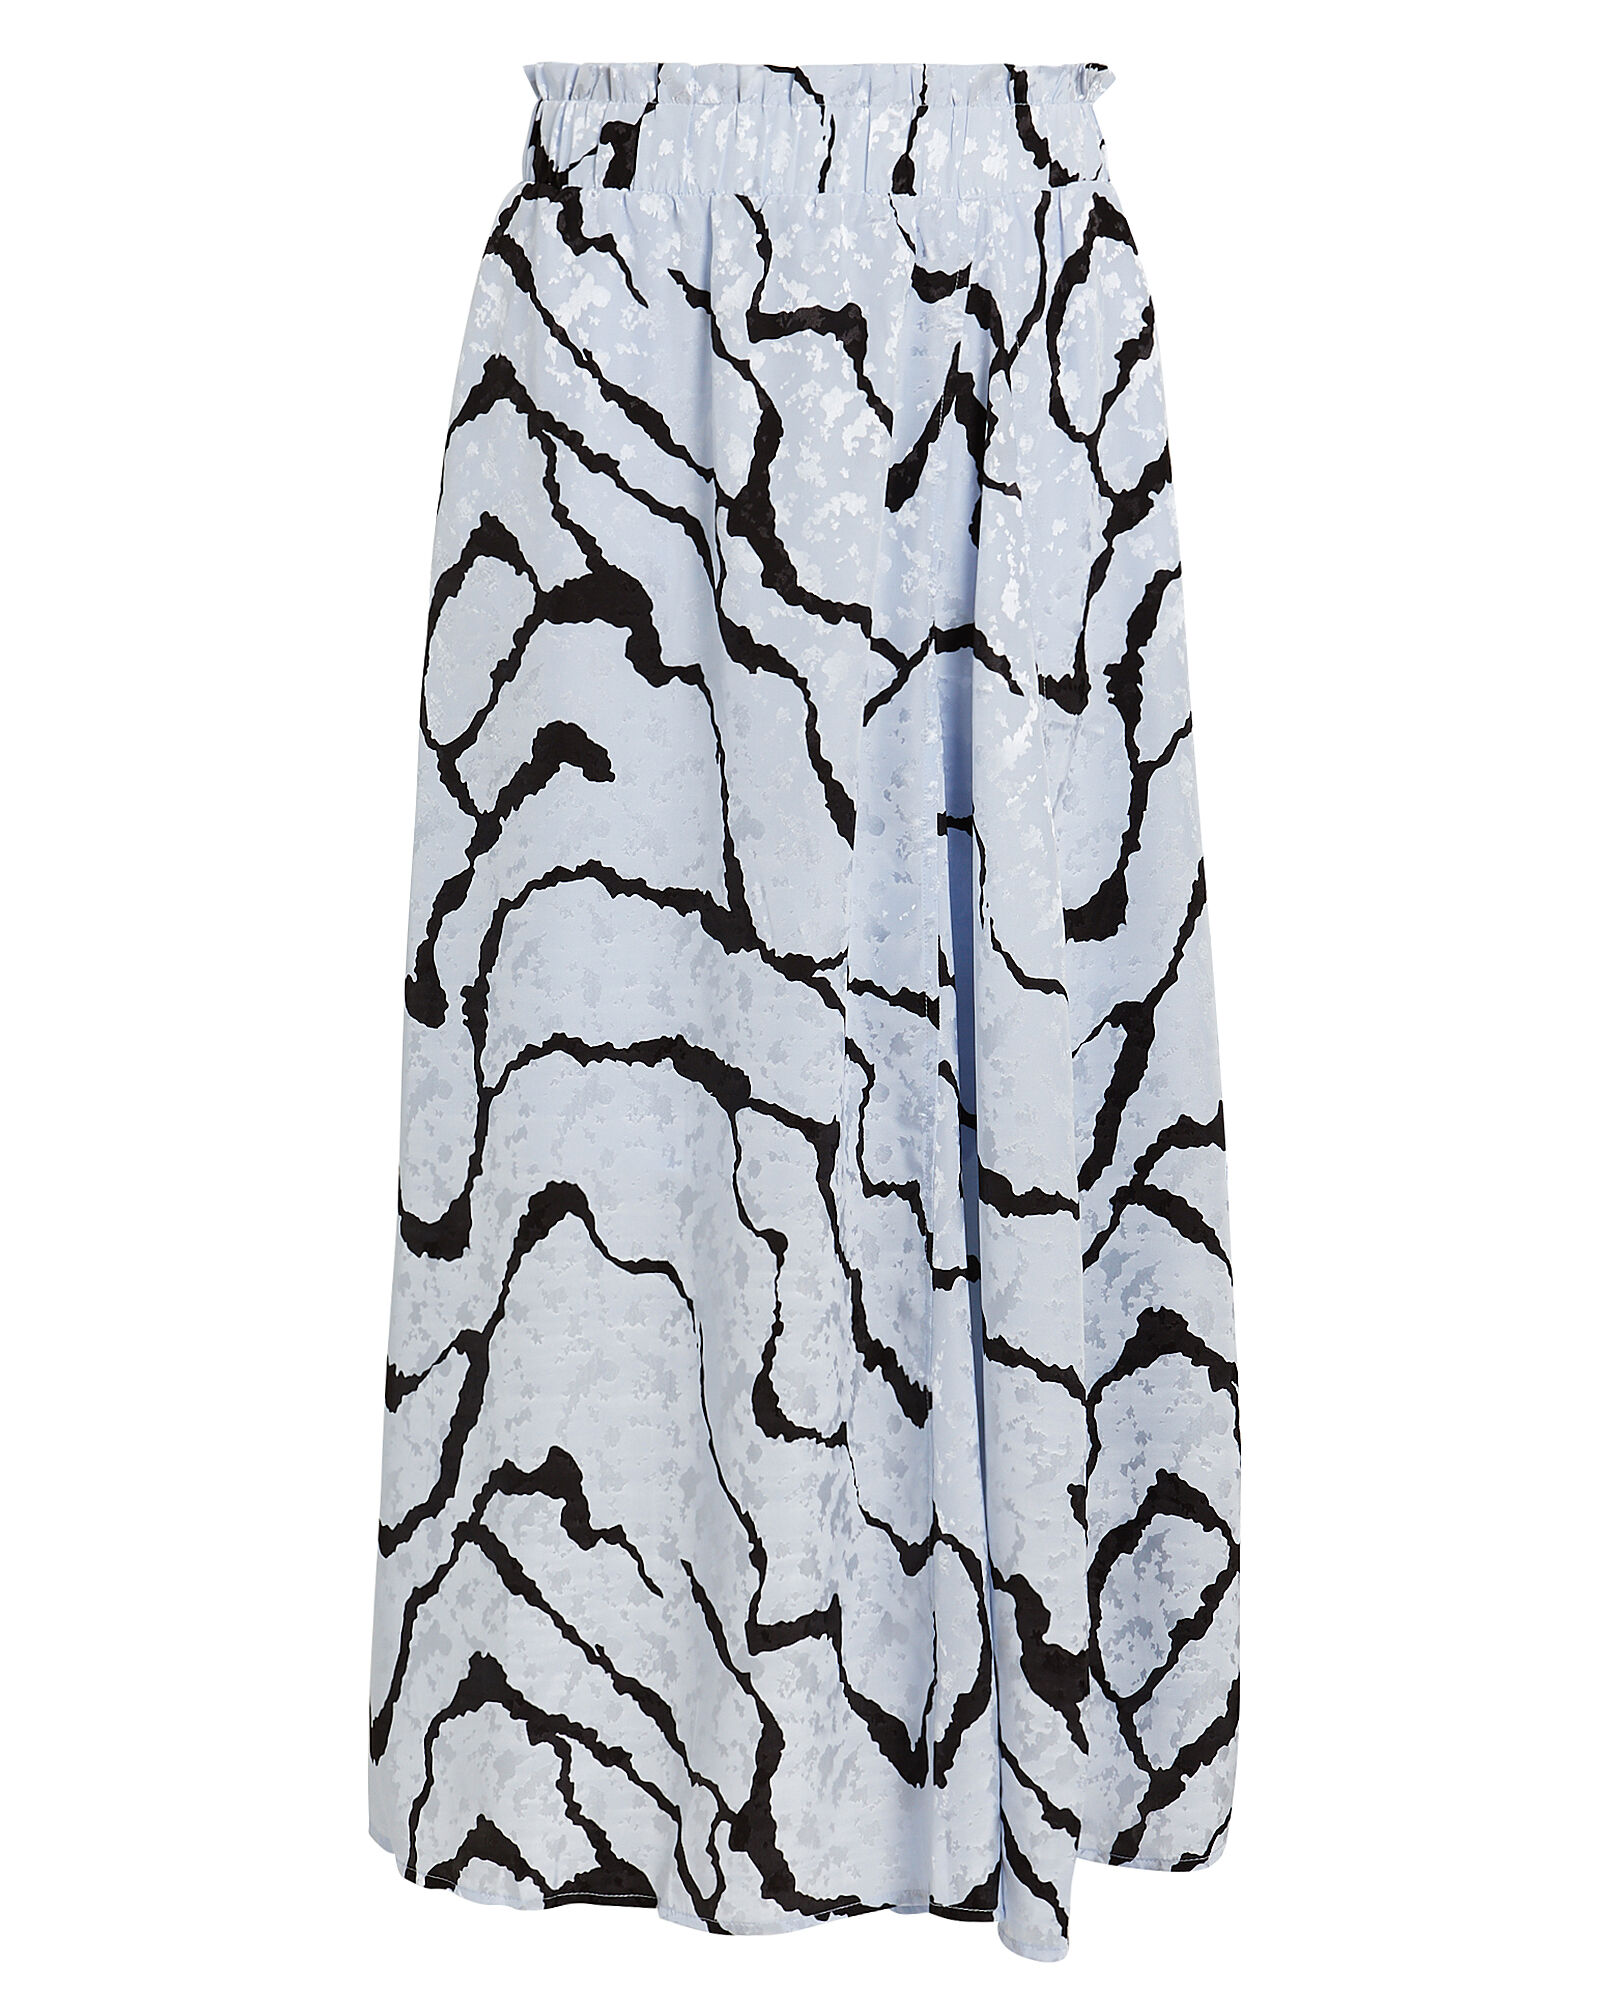 Aylin Ripple Print Skirt, MULTI, hi-res